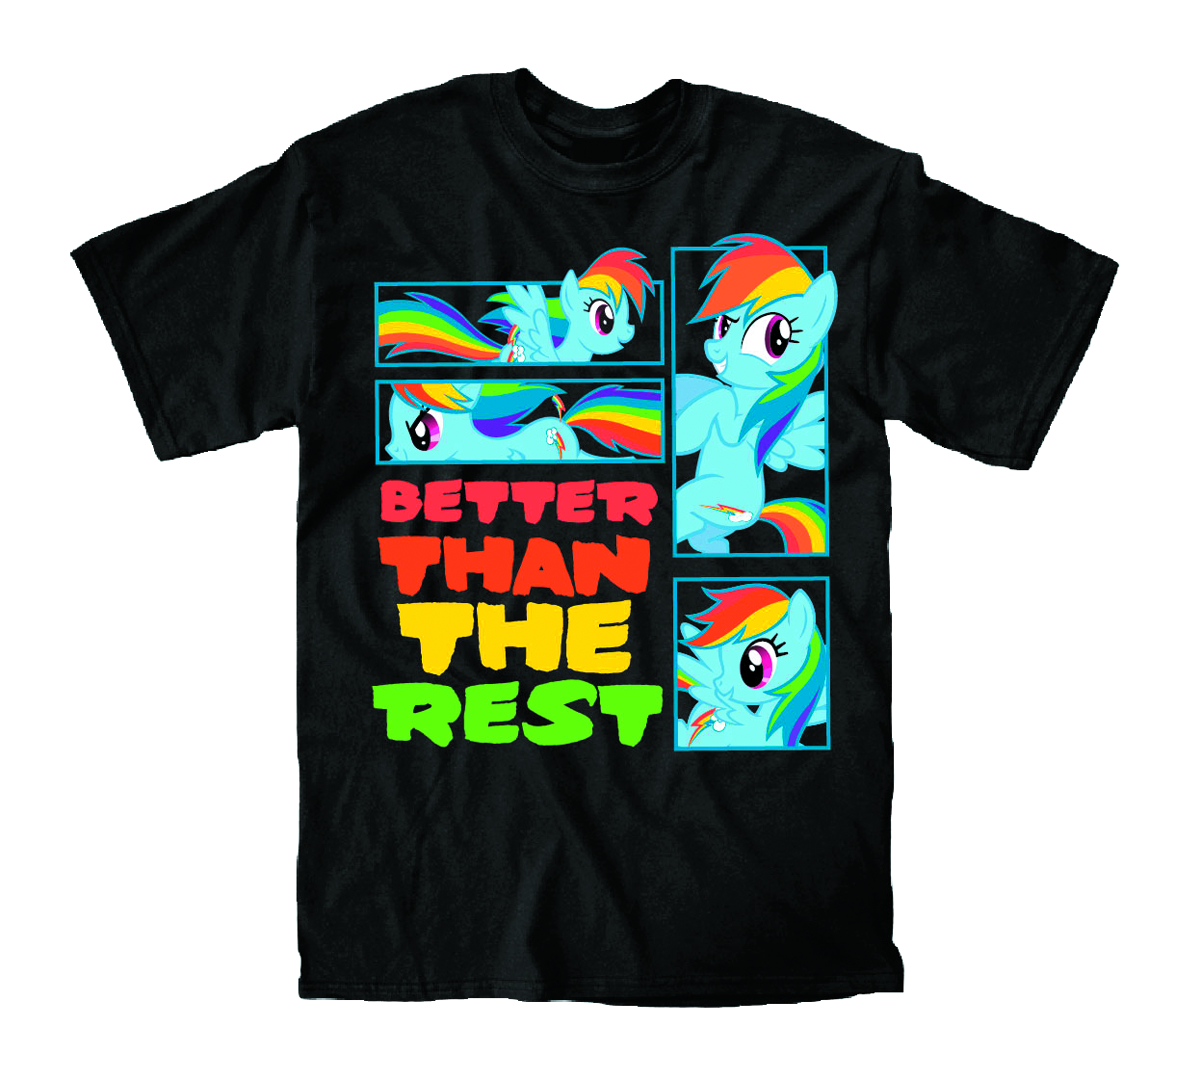 MY LITTLE PONY BETTER THAN THE REST BLK T/S XL